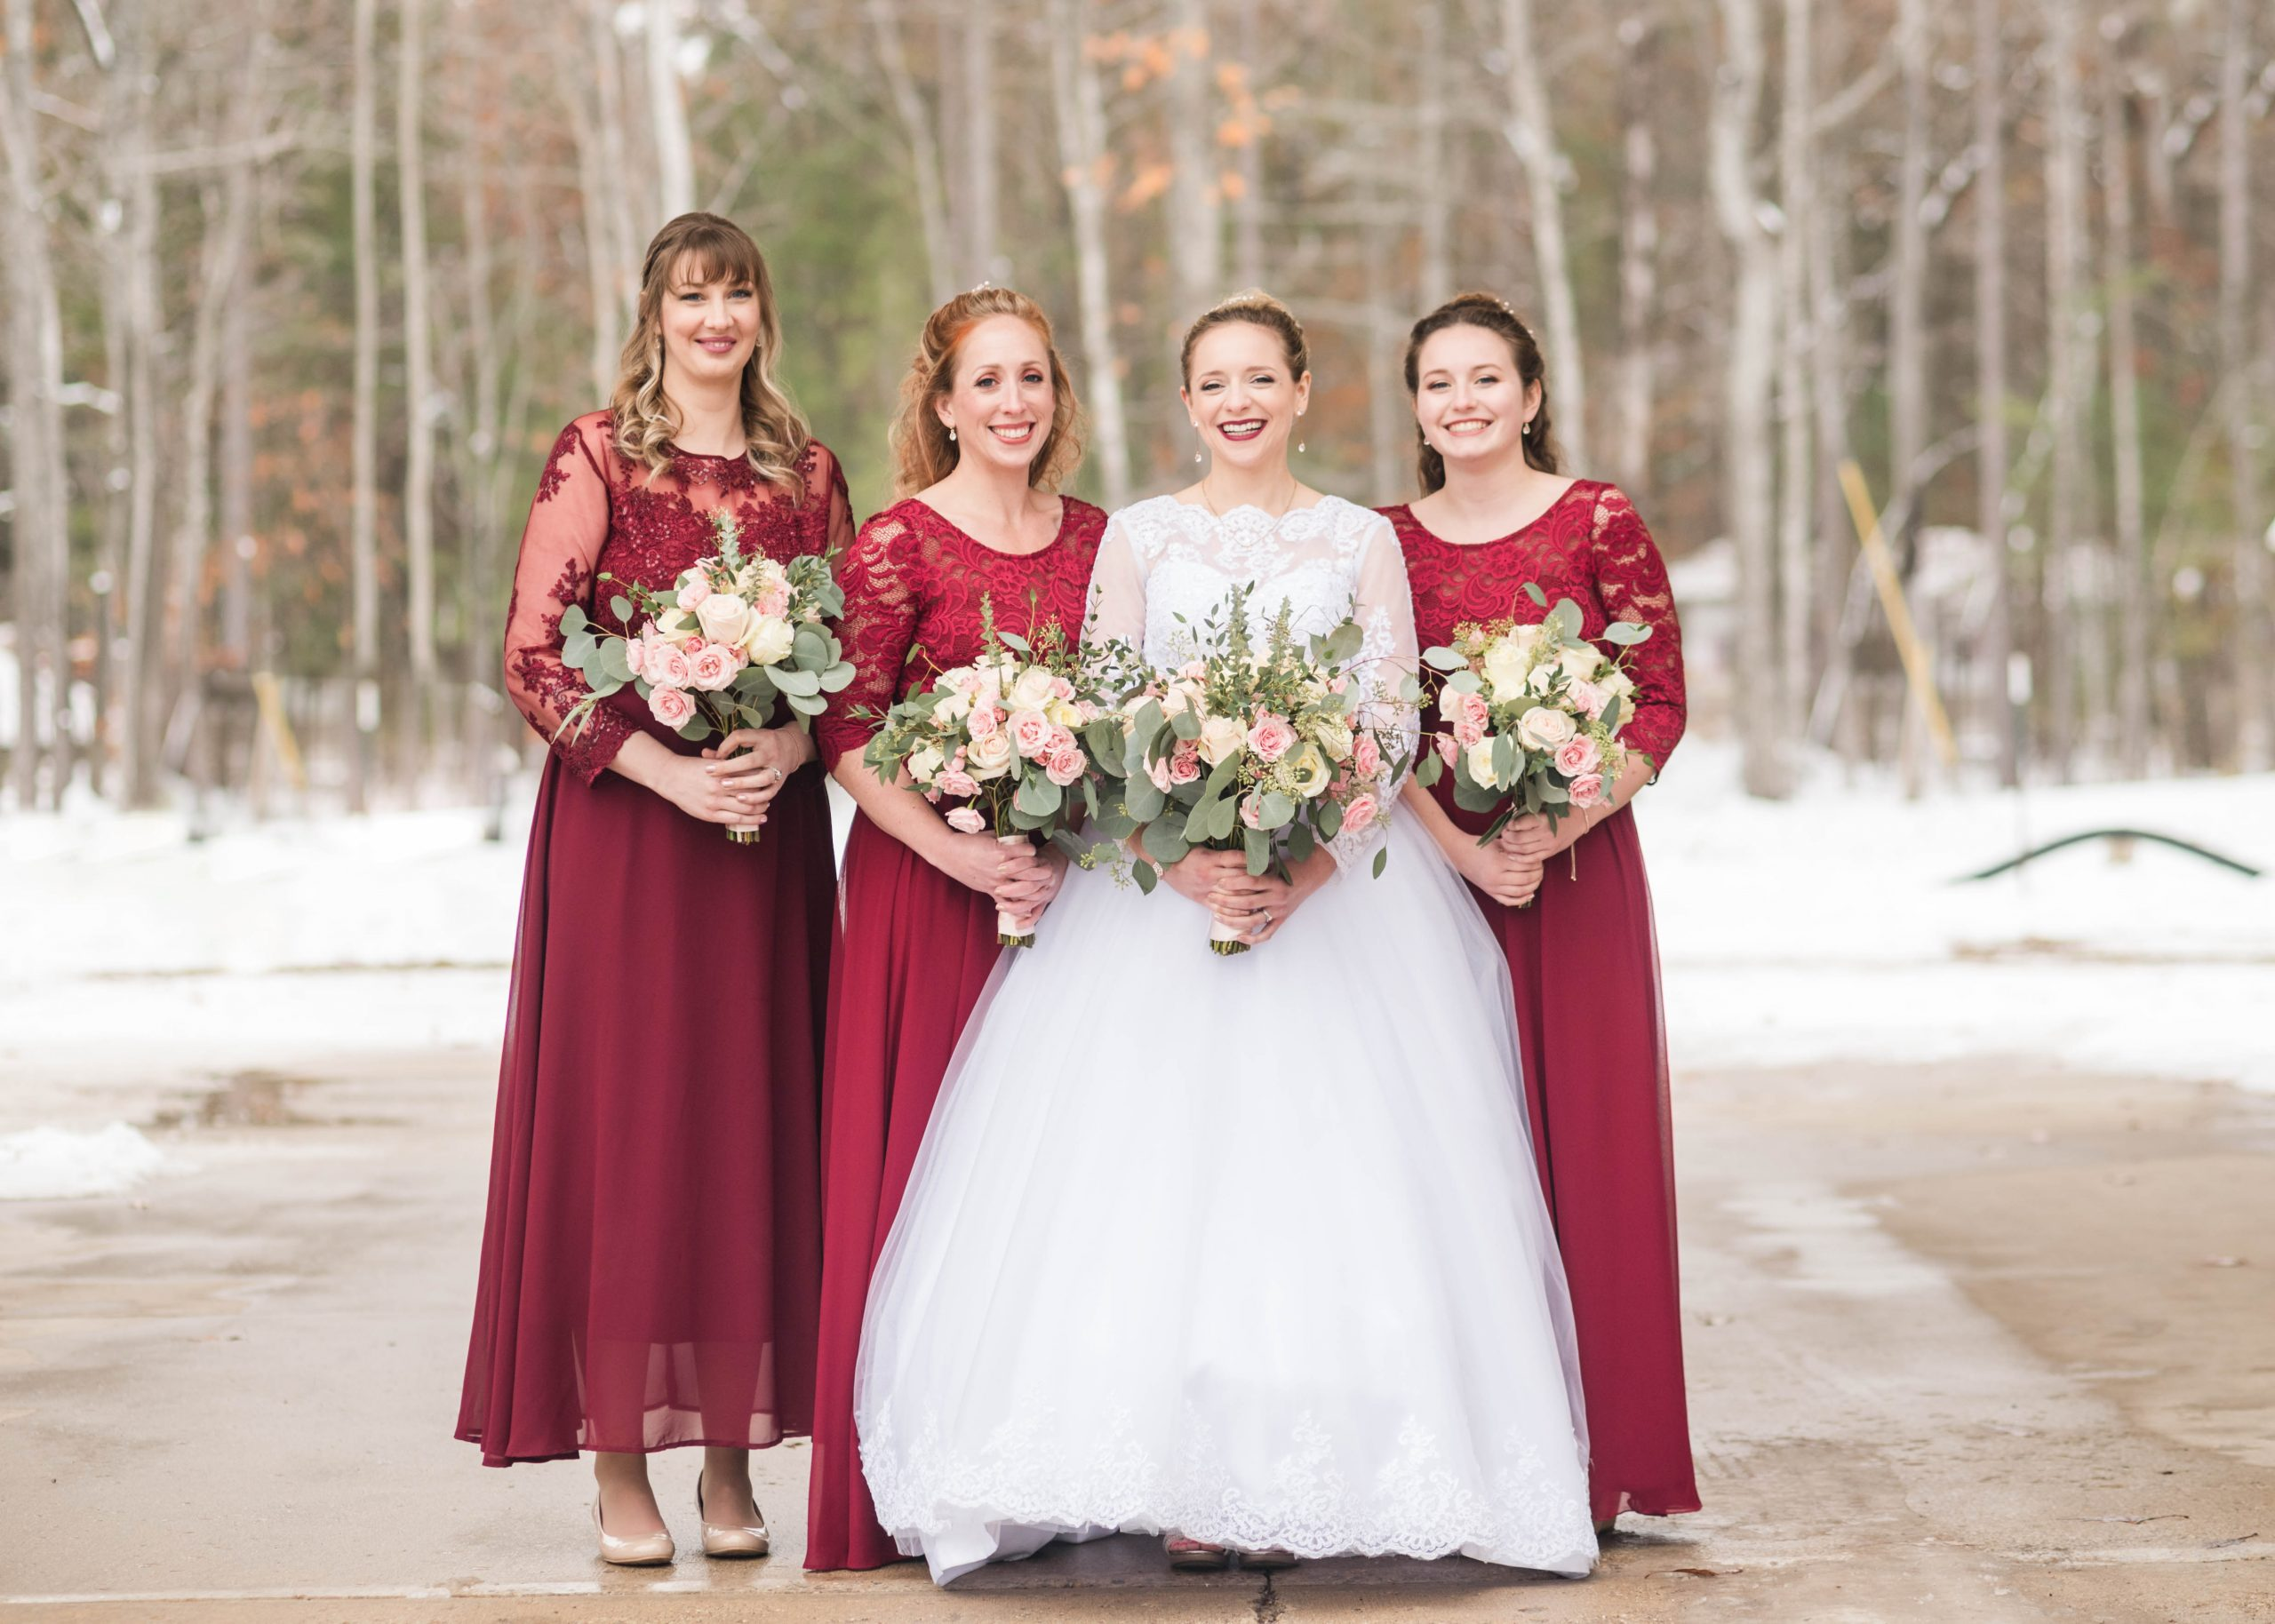 bride and bridesmaids smile together winter wedding